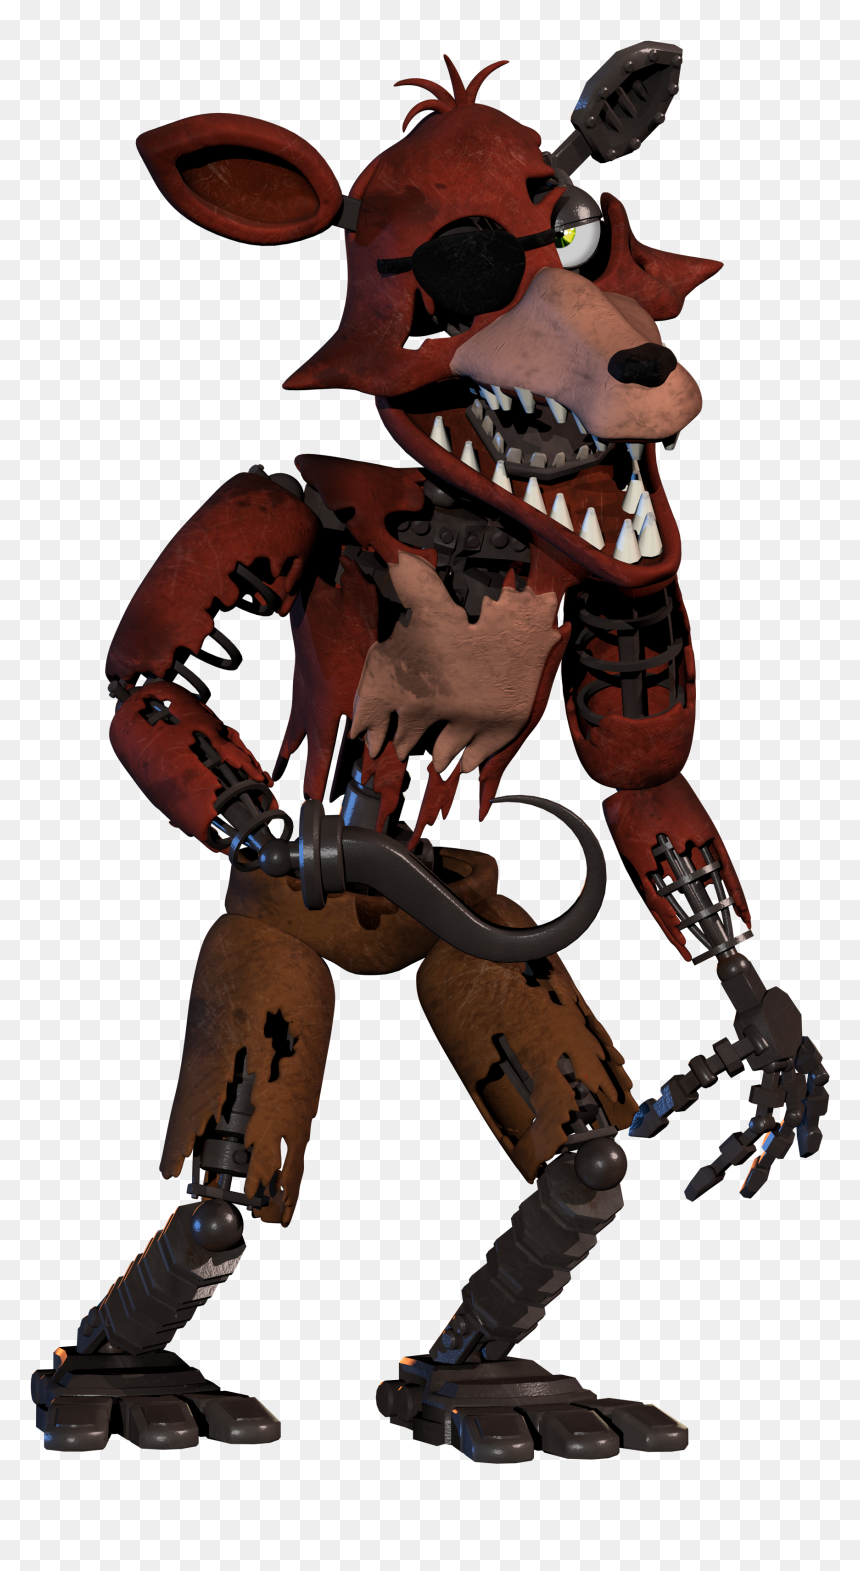 If Scott Cawthon Completed Withered Foxy In Help Wanted Fnaf Vr Withered Foxy Hd Png Download Vhv